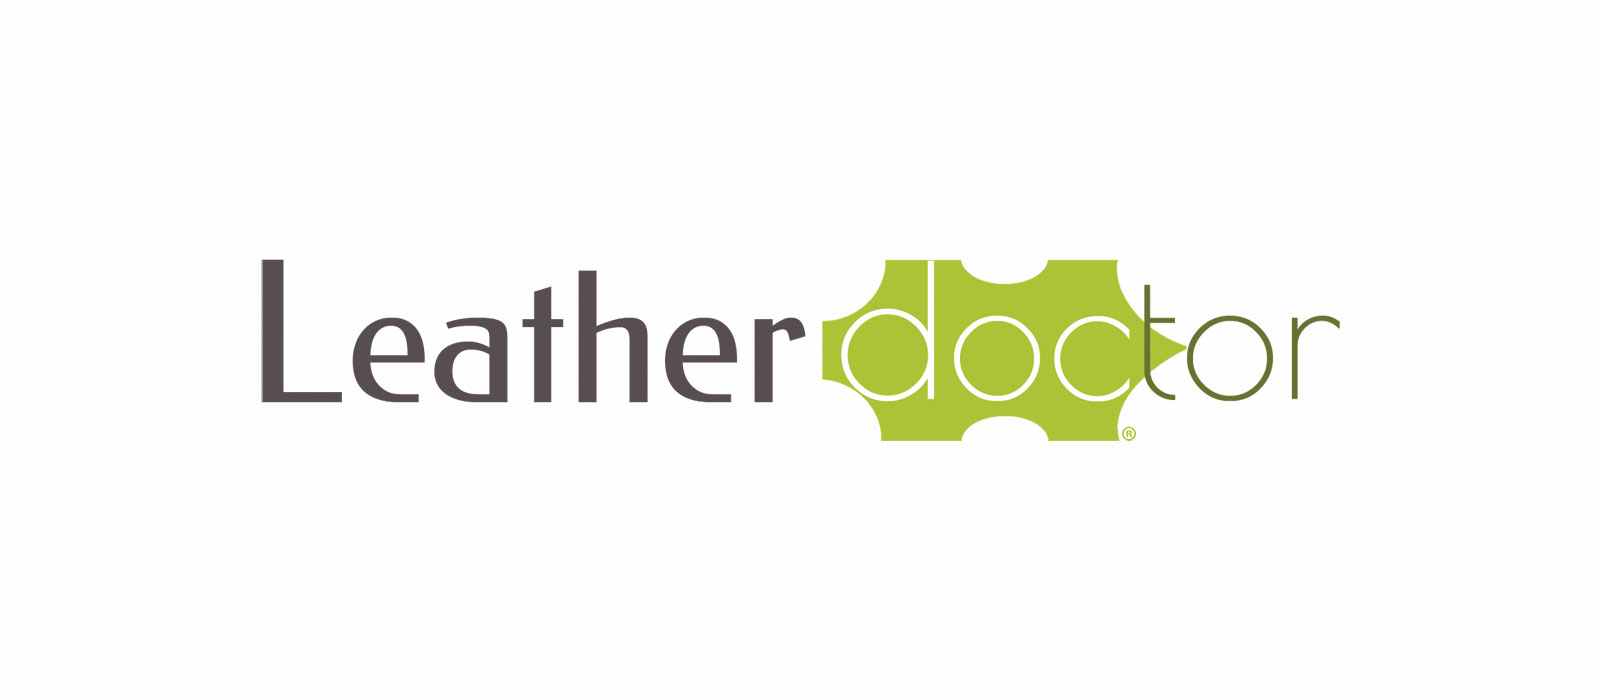 Leather Doctor logo